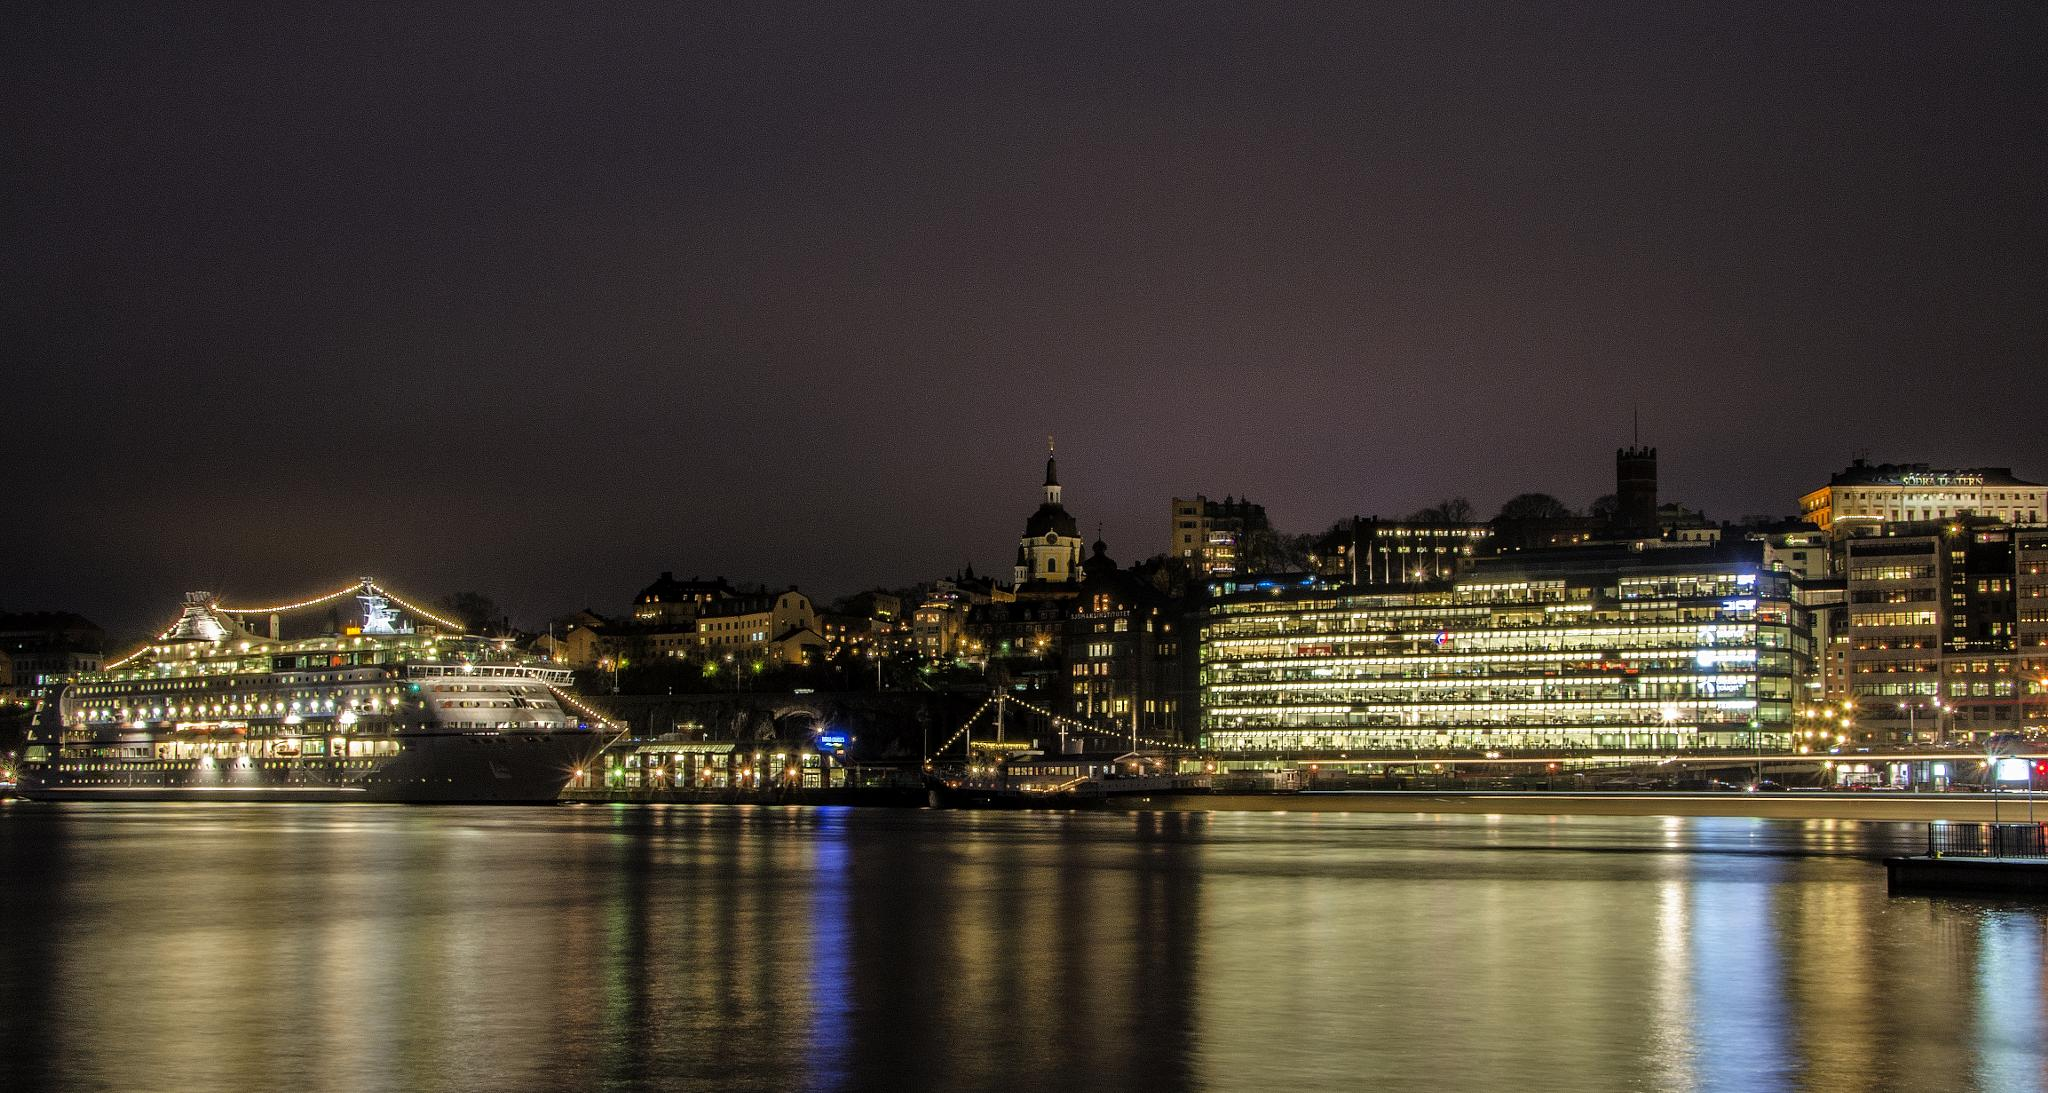 A night in Stockholm by Alexander Arntsen